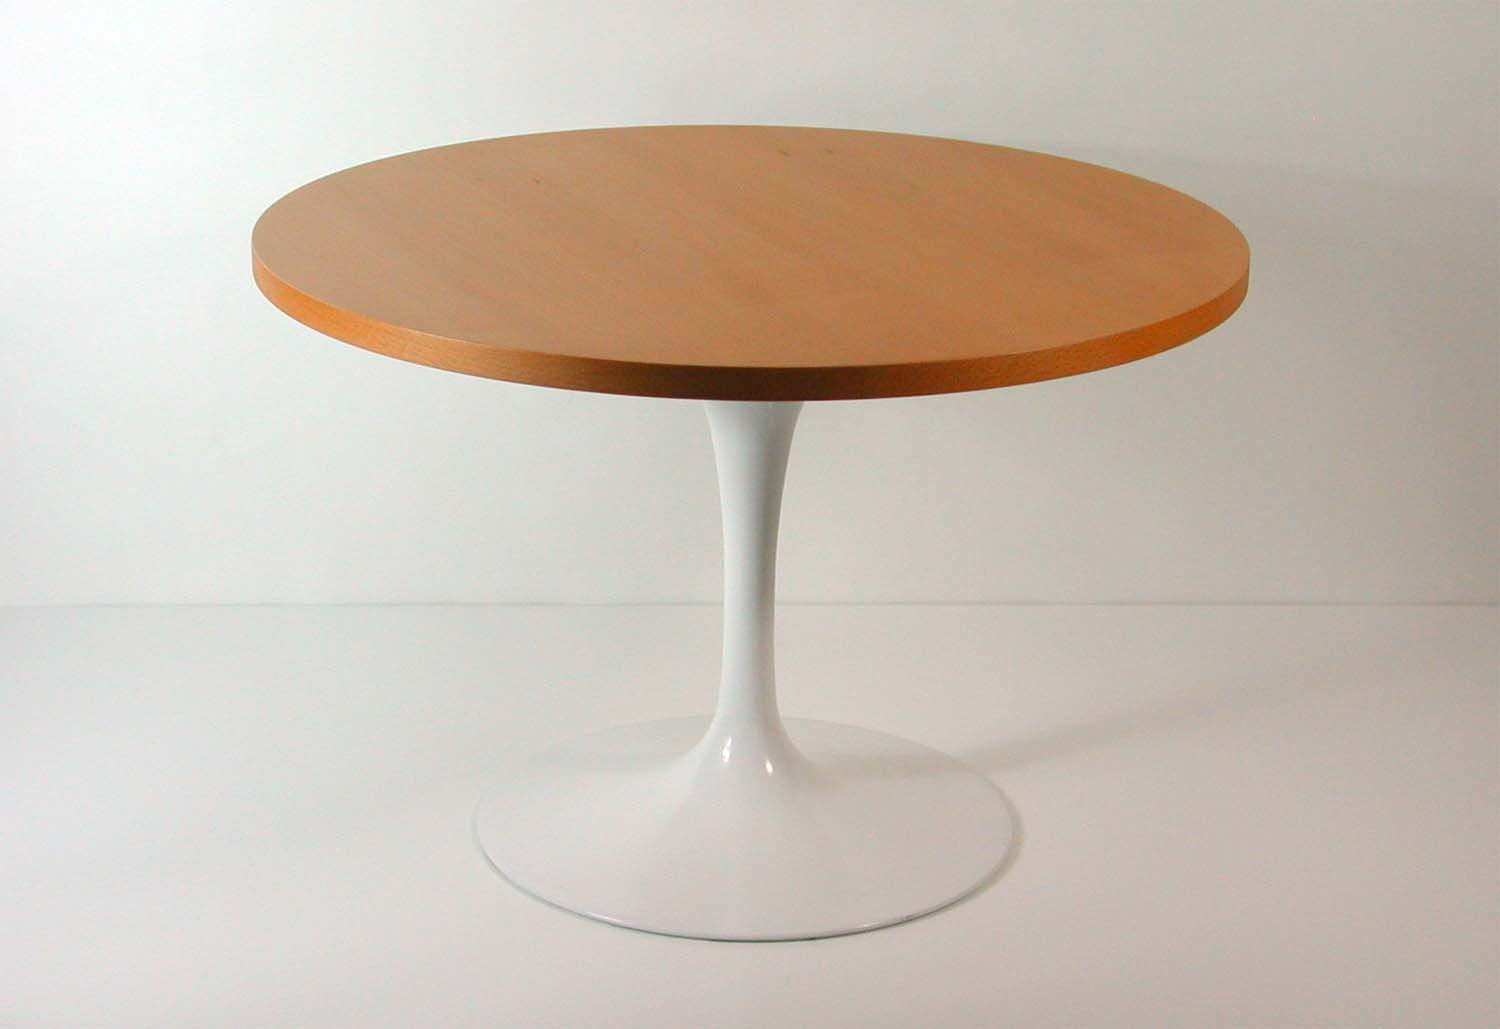 Tulip Base Lazy Susan Coffee Table By Eero Saarinen For Knoll For Sale